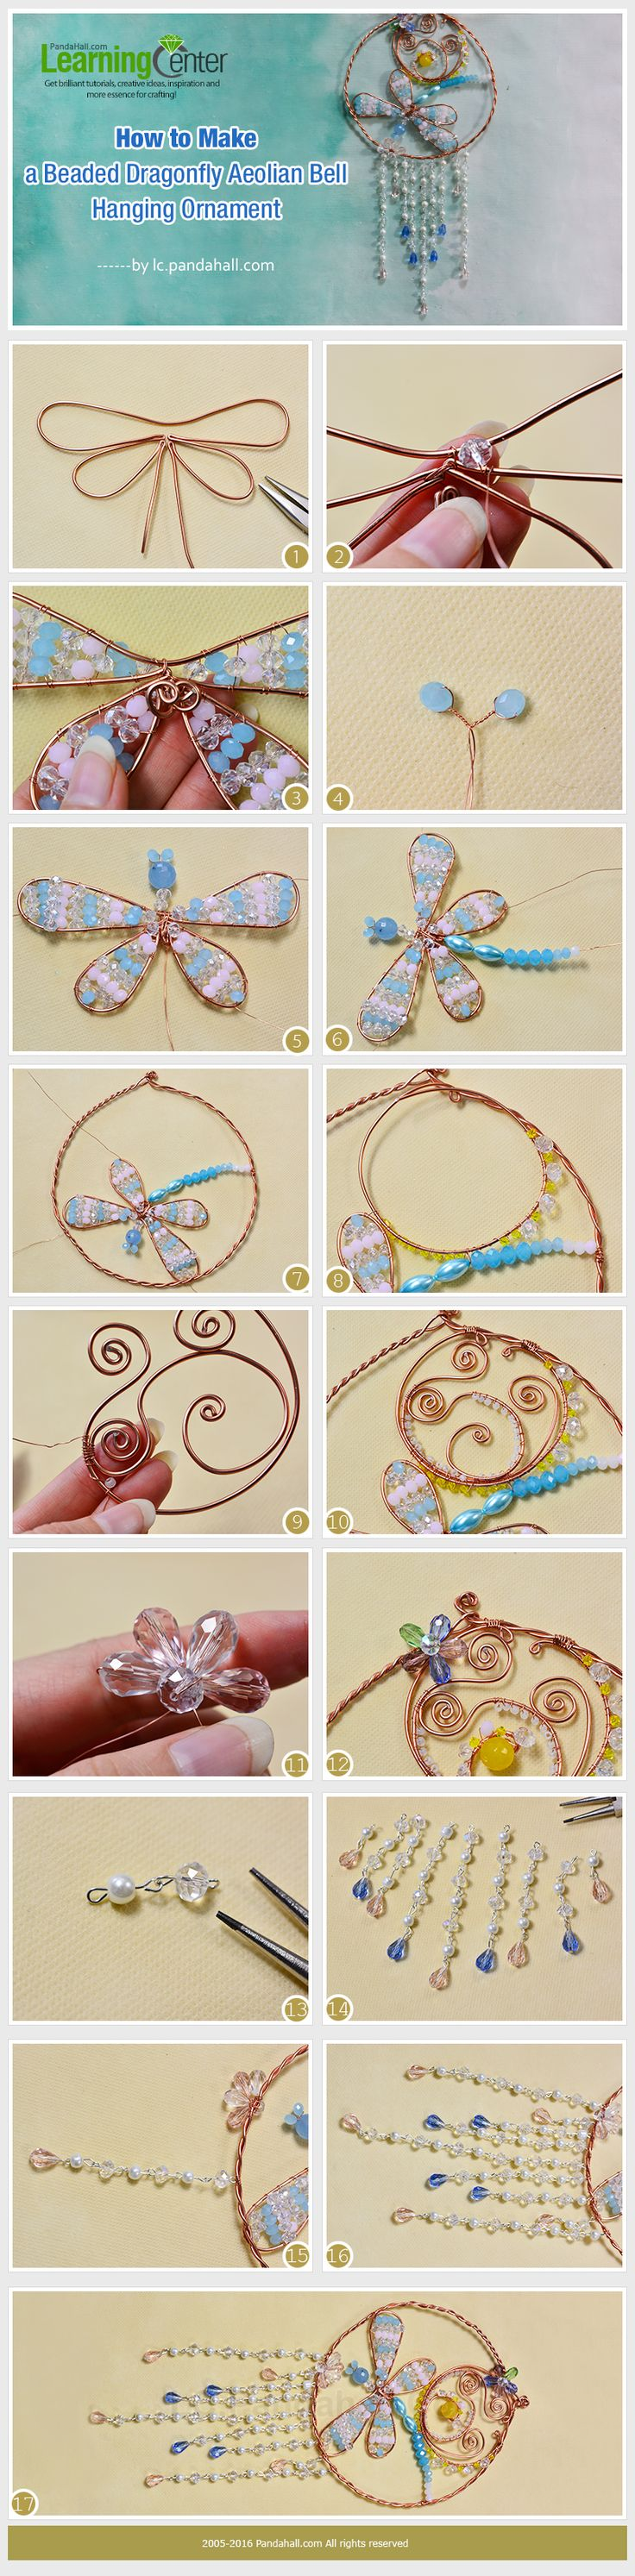 Tutorial on How to Make a Beaded Dragonfly Aeolian Bell Hanging Ornament from LC.Pandahall.com       #pandahall